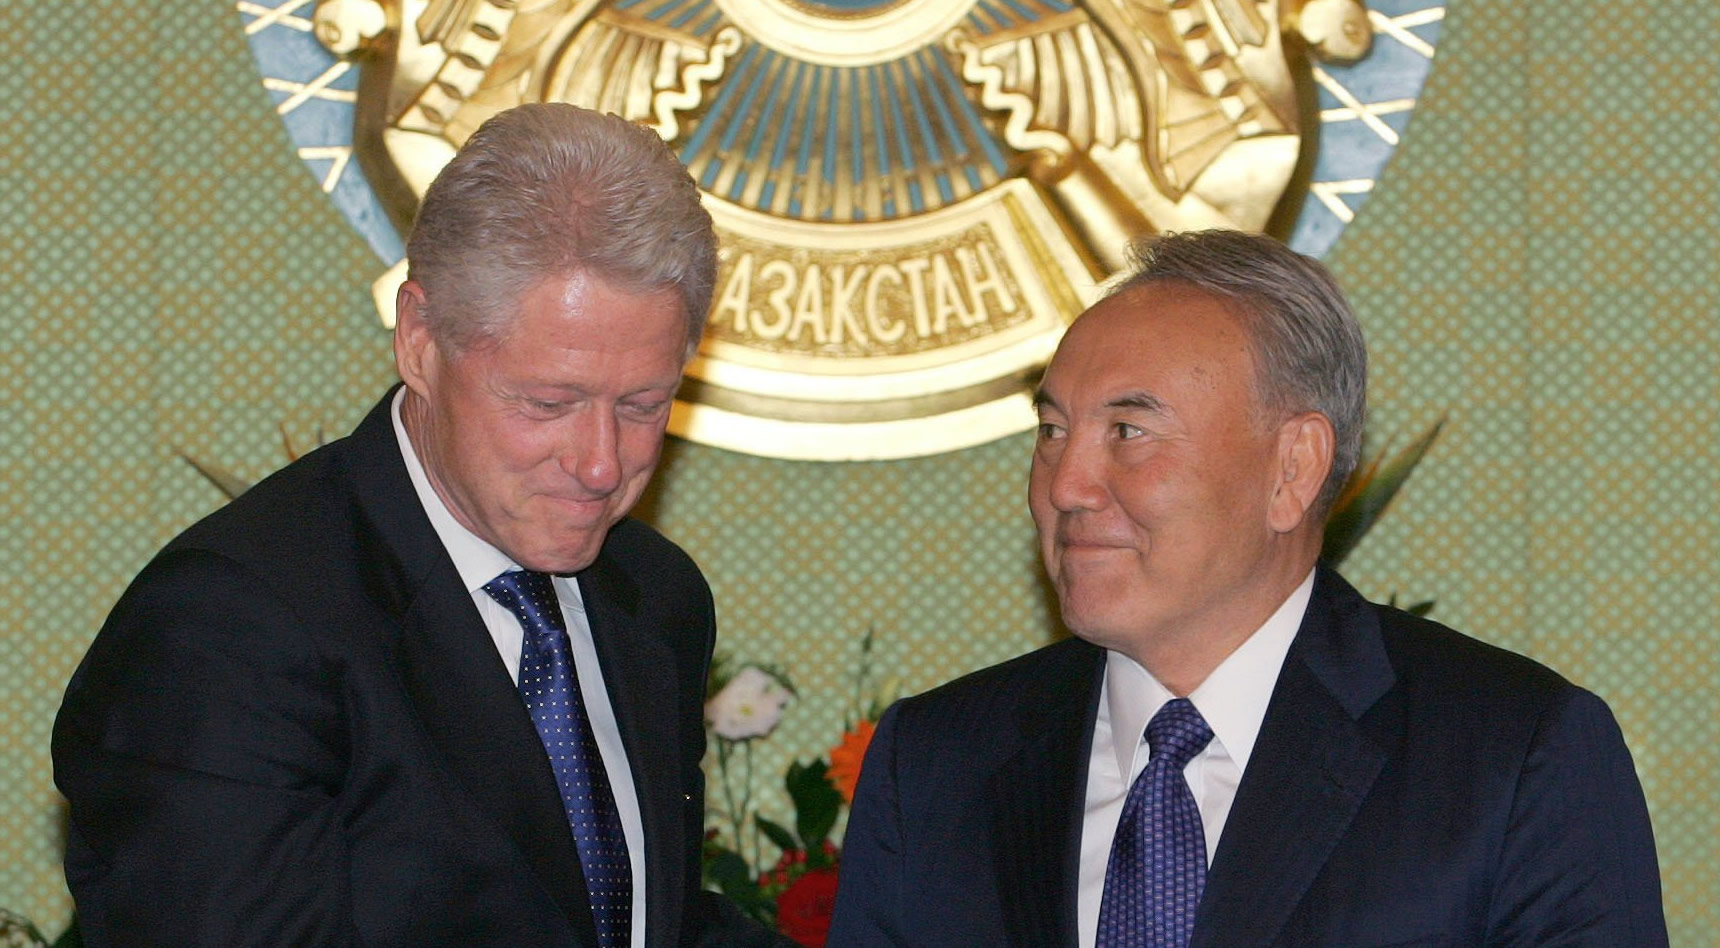 "On Sep. 6, 2005, Bill Clinton met with Kazakh strongman Nursultan A. Nazarbayev. Two days later, Bill's friend, Frank Giustra, received coveted Kazakh uranium mining rights—even though Giustra had no uranium mining track record. The industry was stunned. Within months, The Clinton Foundation received $152 million in ""donations"" from Frank Giustra. Two years later, Giustra sold those rights for $3.1 billion. Hillary and Bill did not disclose their Foundation winnings until forced to recently by Canadian authorities. Goldman Sachs assisted Giustra, and everyone else swirling around the Clinton's New World Order community organizing."